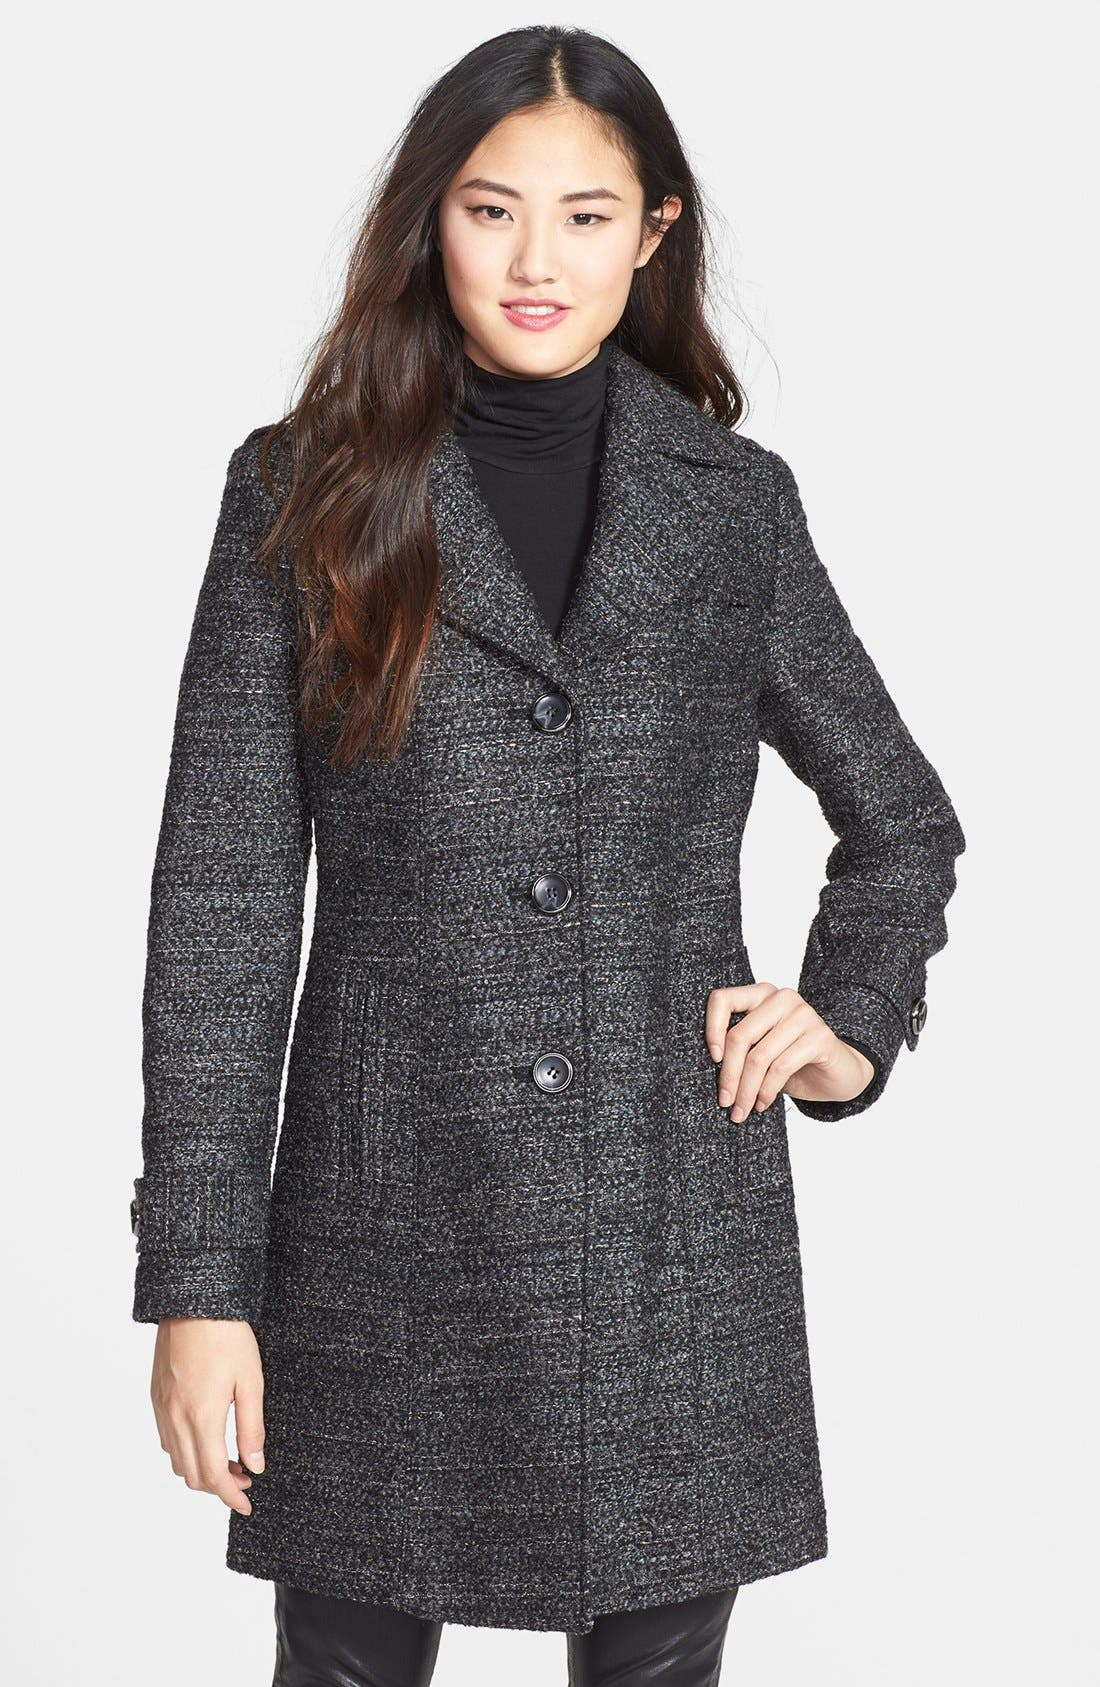 Main Image - Kenneth Cole New York Metallic Tweed Walking Coat (Online Only)